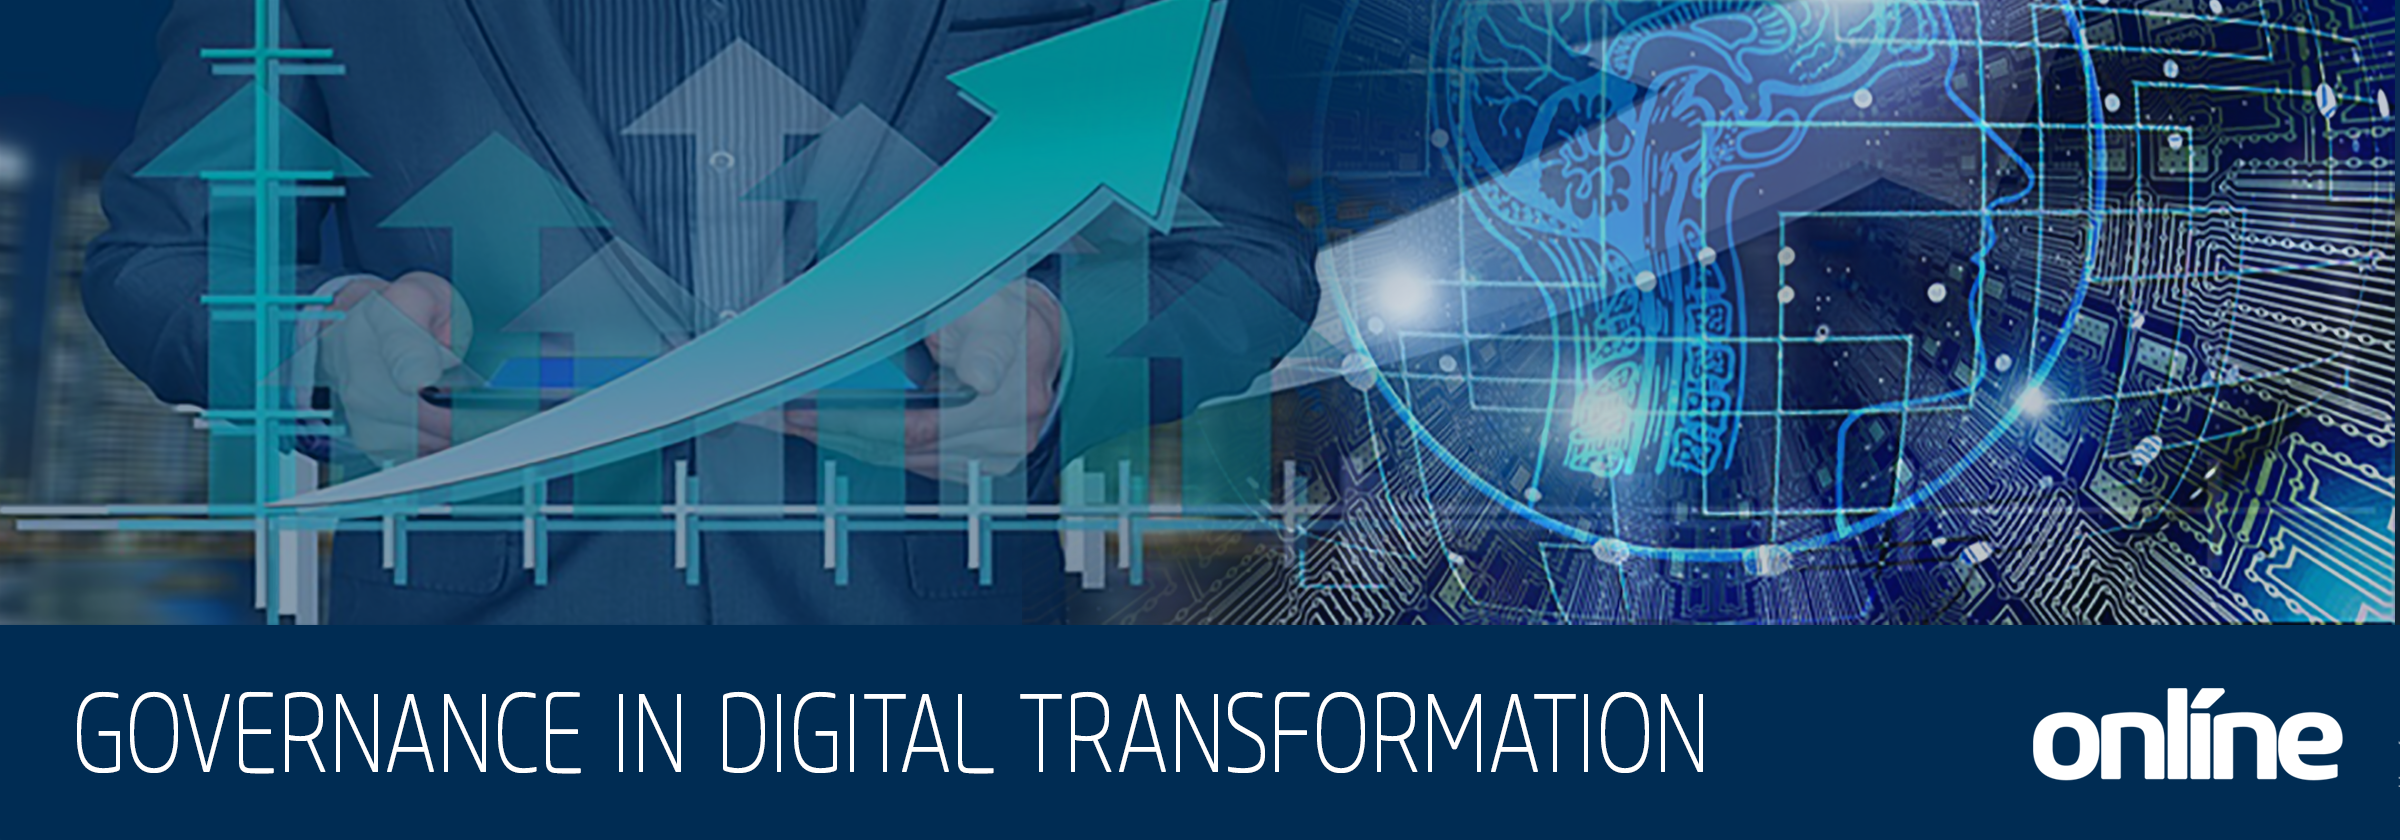 DigitalTransformation-banner